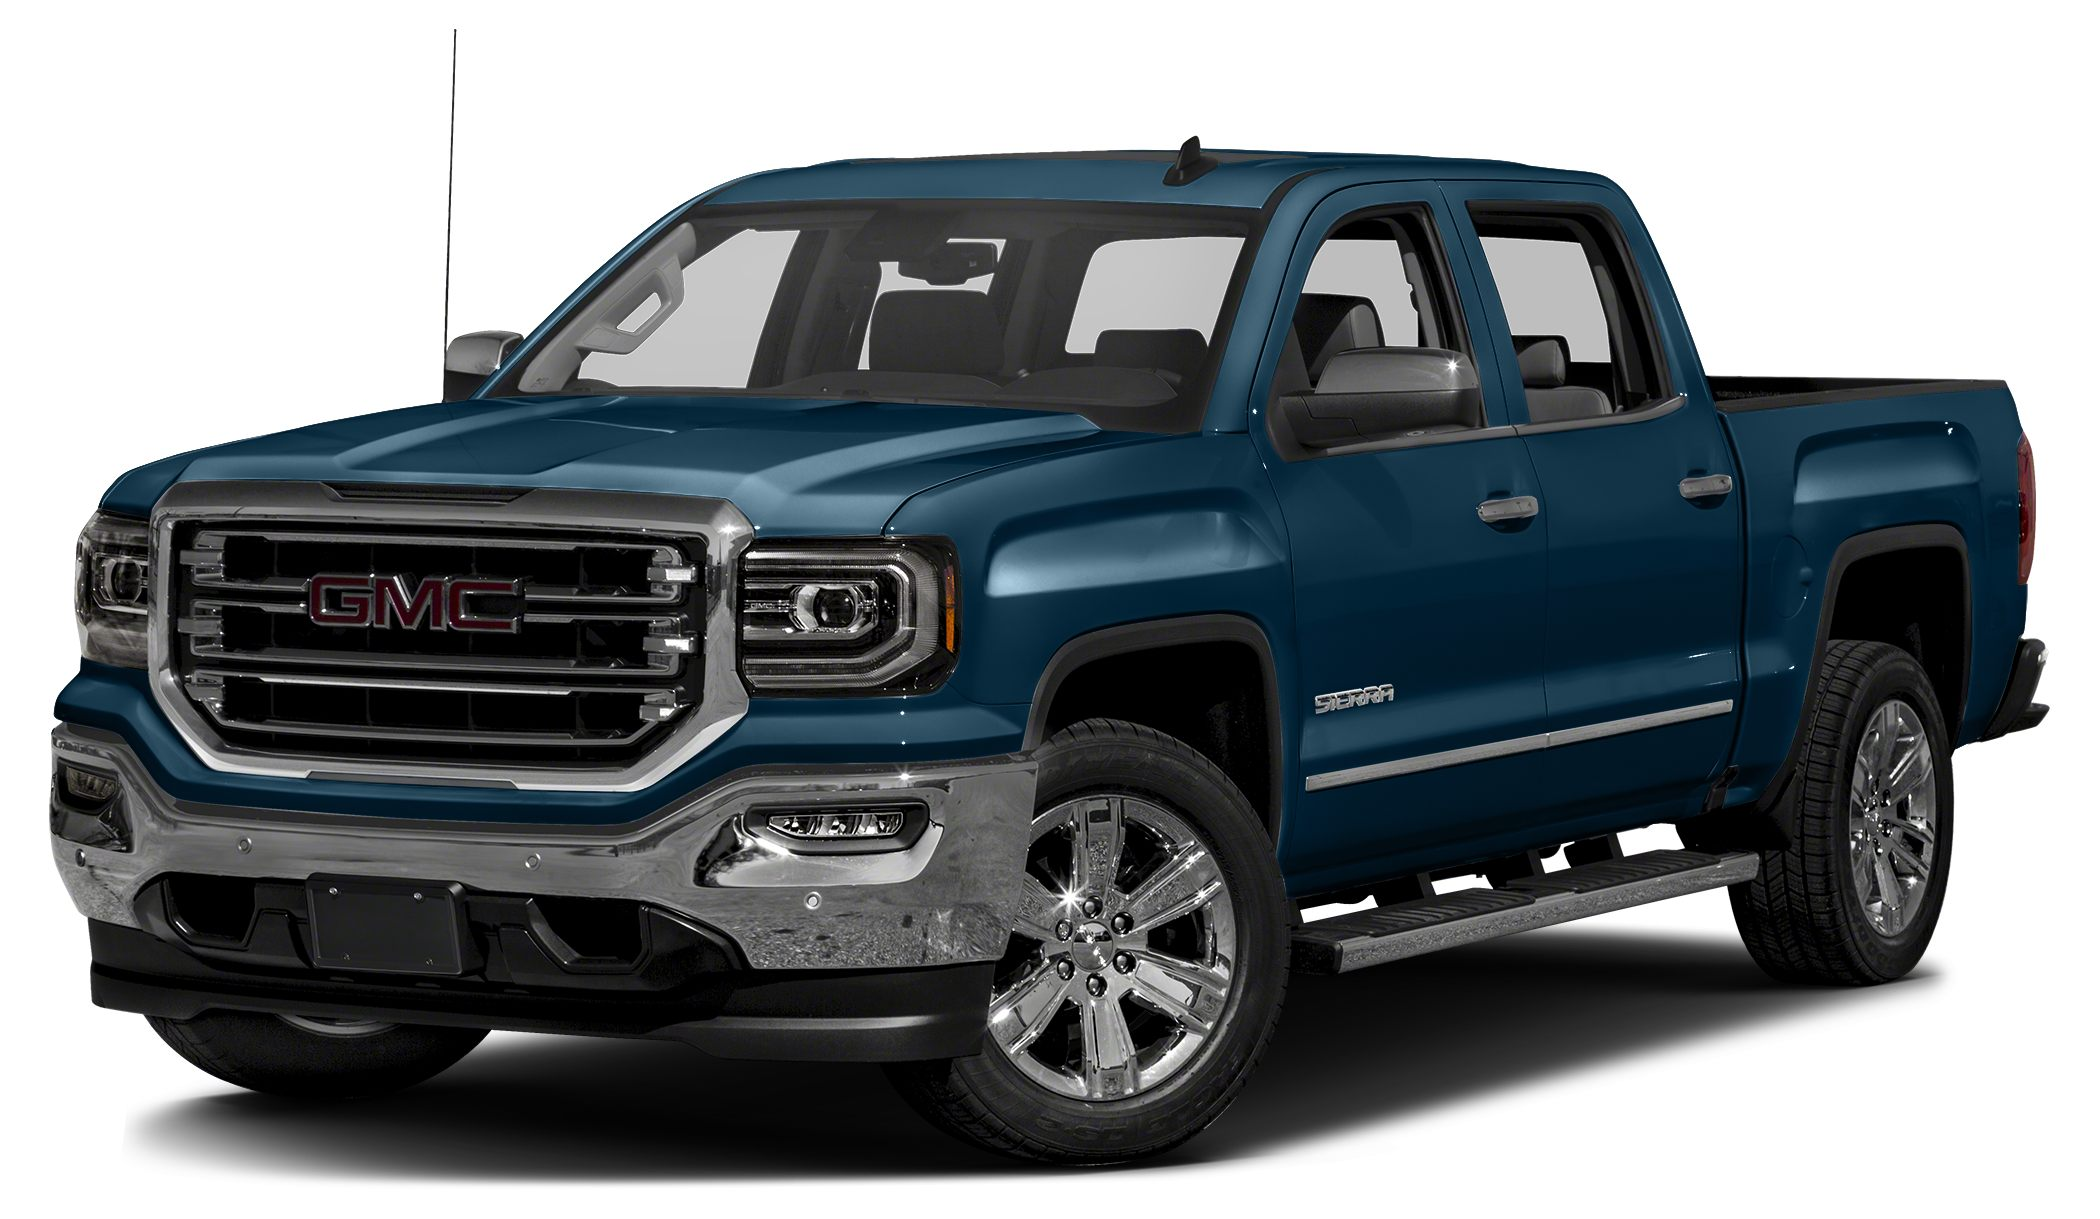 2018 GMC Sierra 1500 SLT Equipped with a remote starter backup camera Bluetooth braking assist